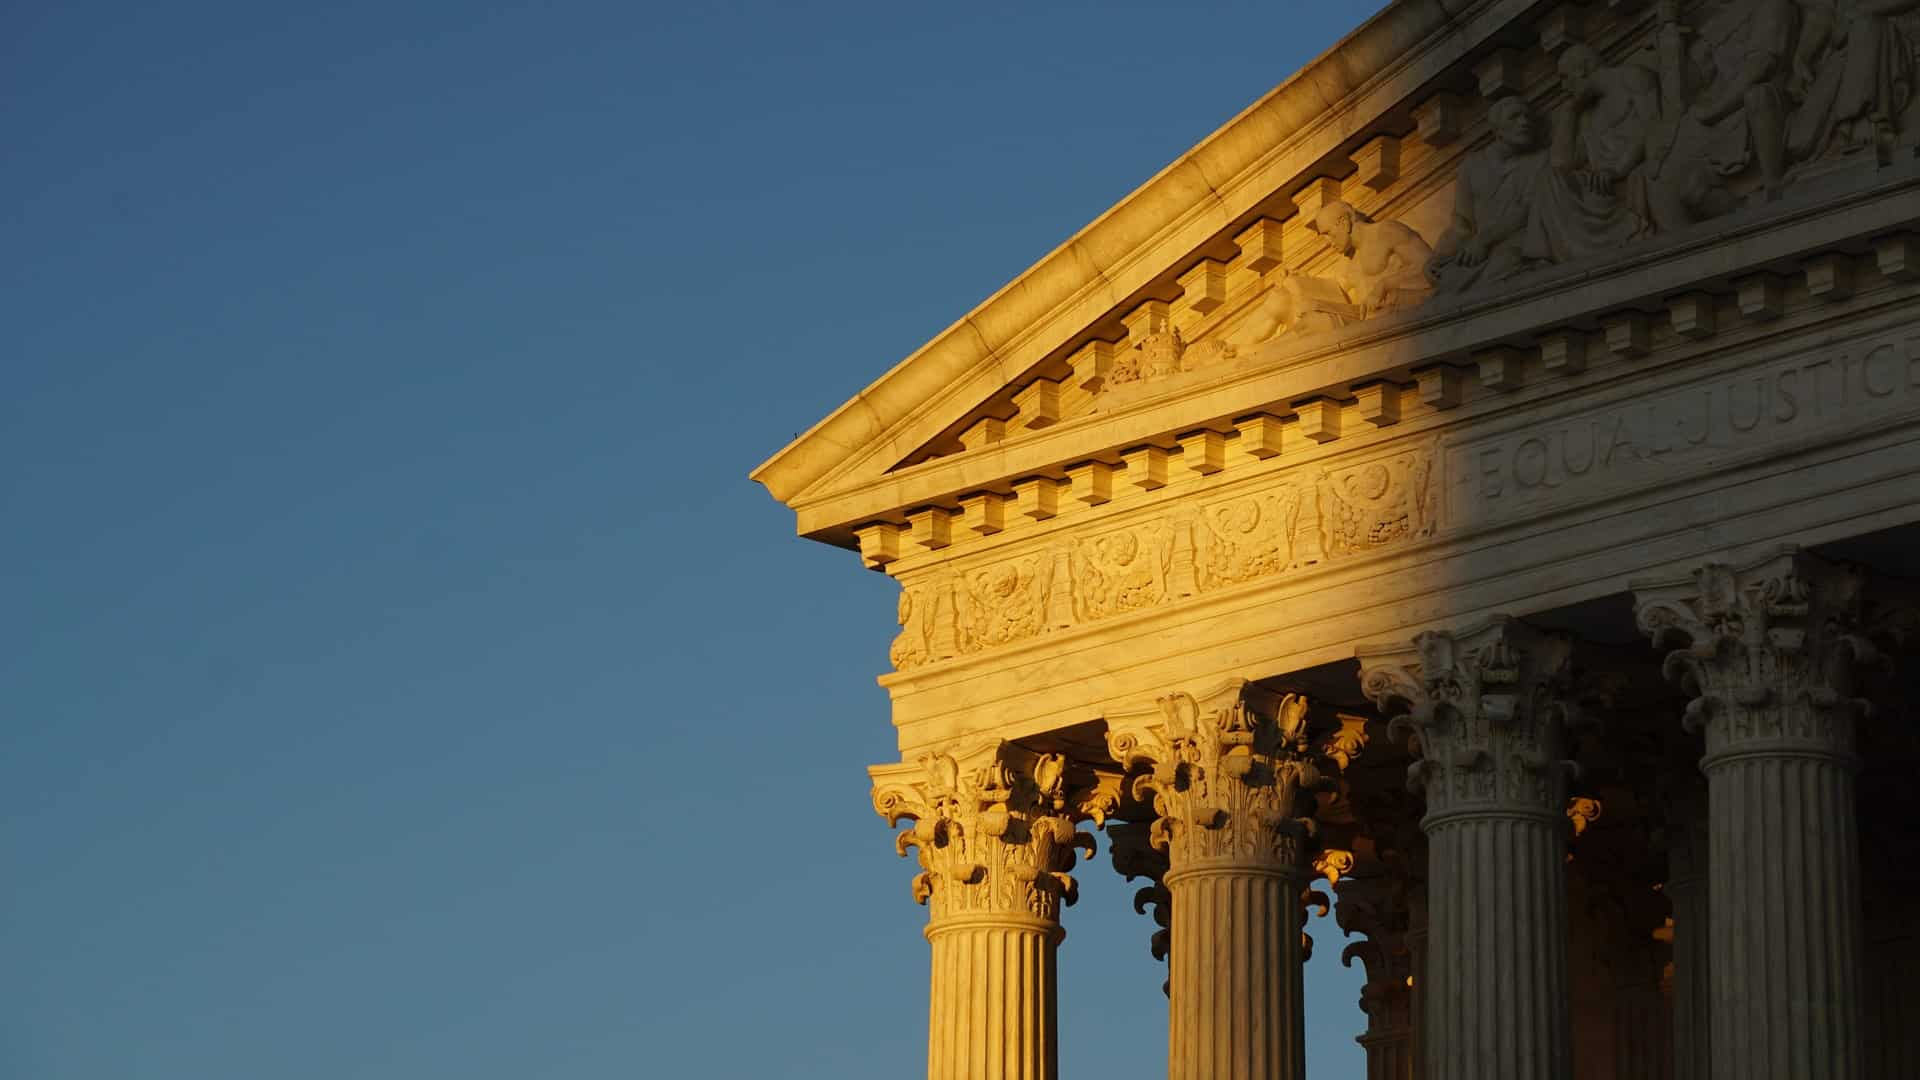 US Supreme Court building façade during sunset